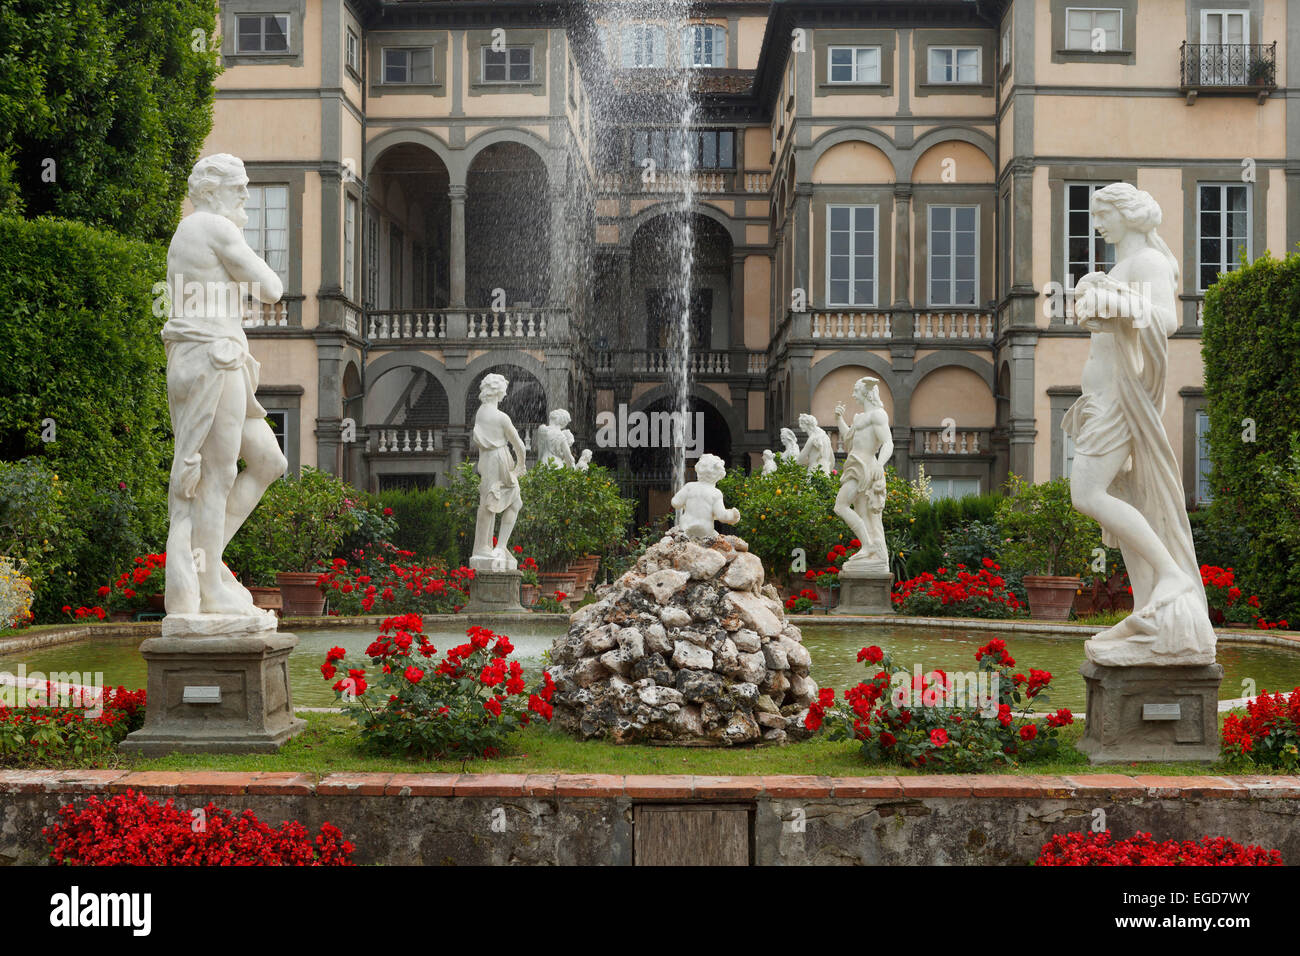 Fountain with statues in the baroque garden, Palazzo Pfanner palace, historic centre of Lucca, UNESCO World Heritage - Stock Image